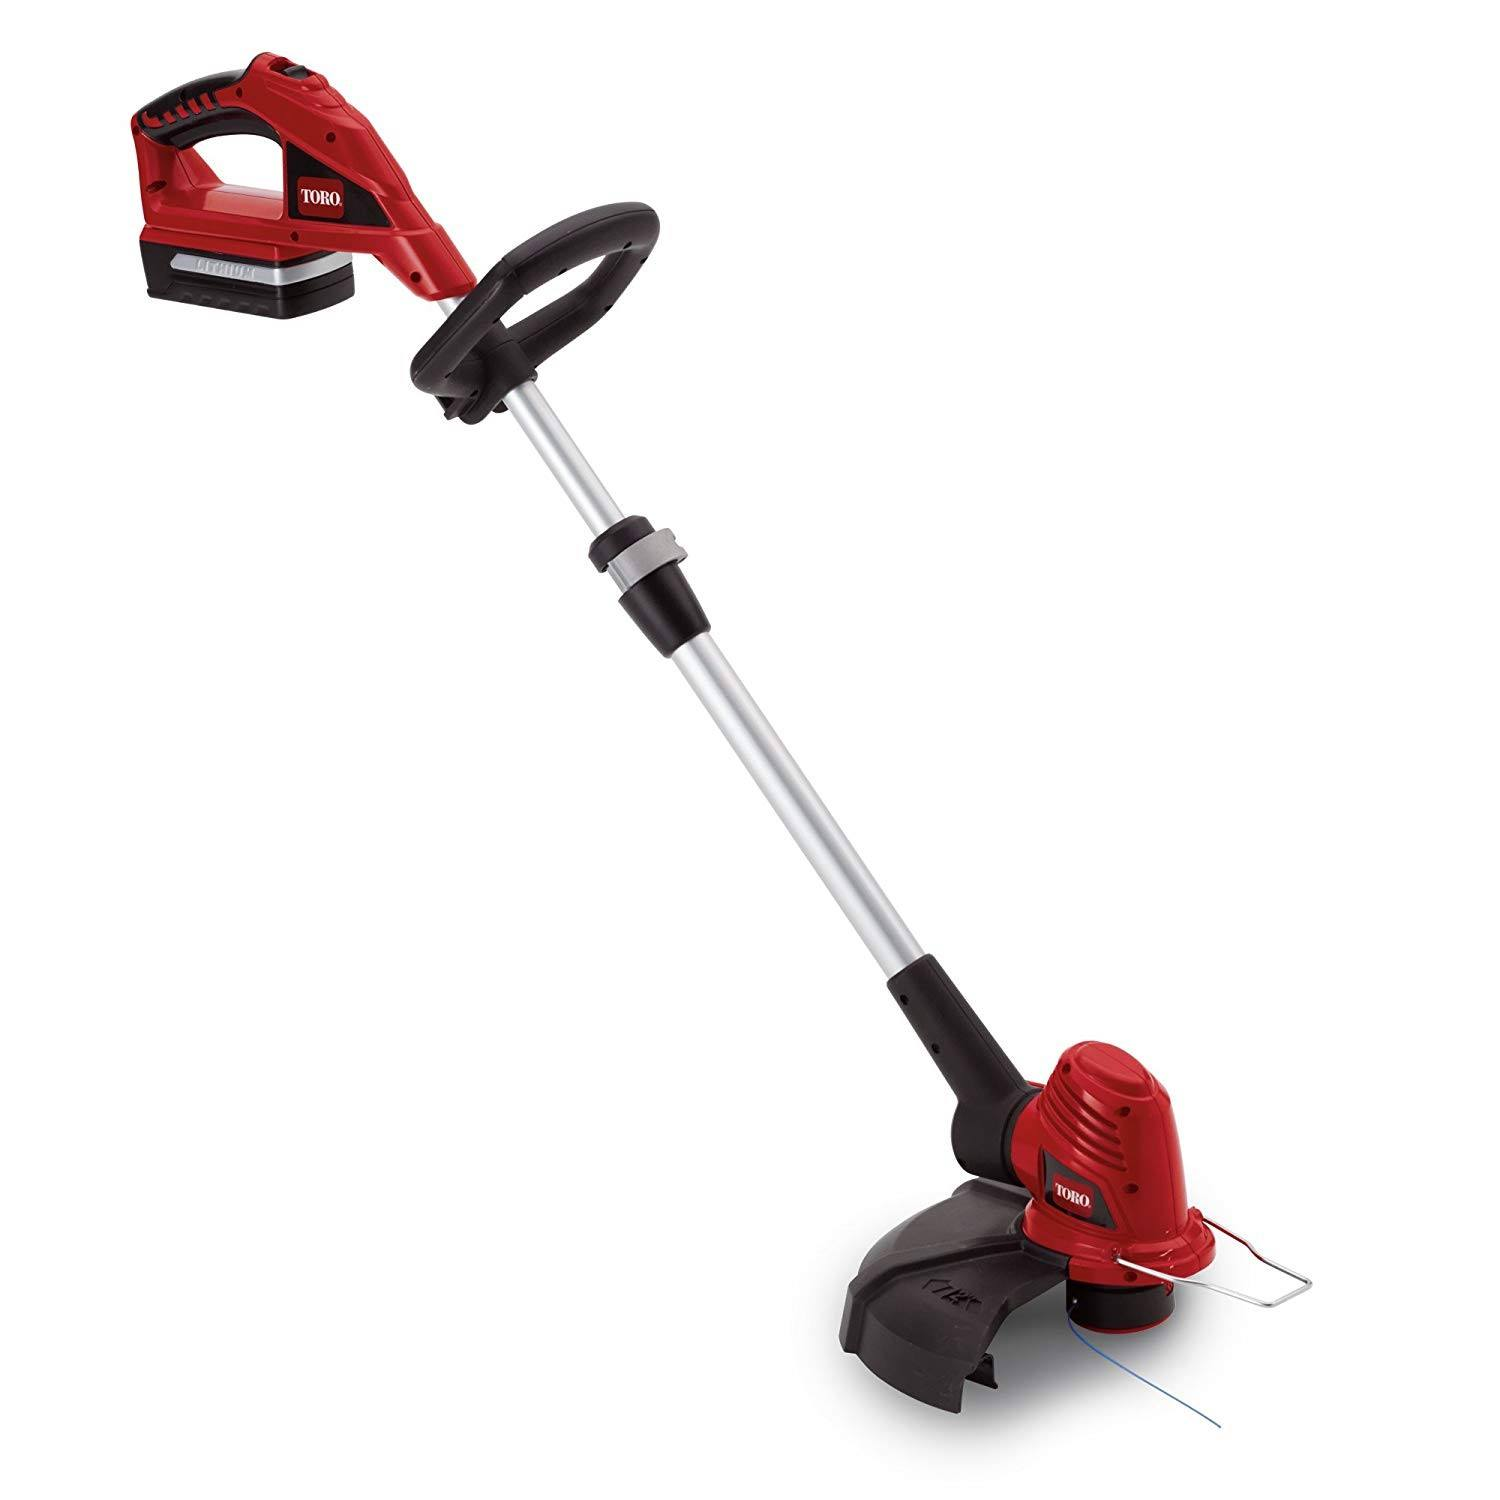 Electric Vs. Gas Weed Eater – What's The Difference? 1